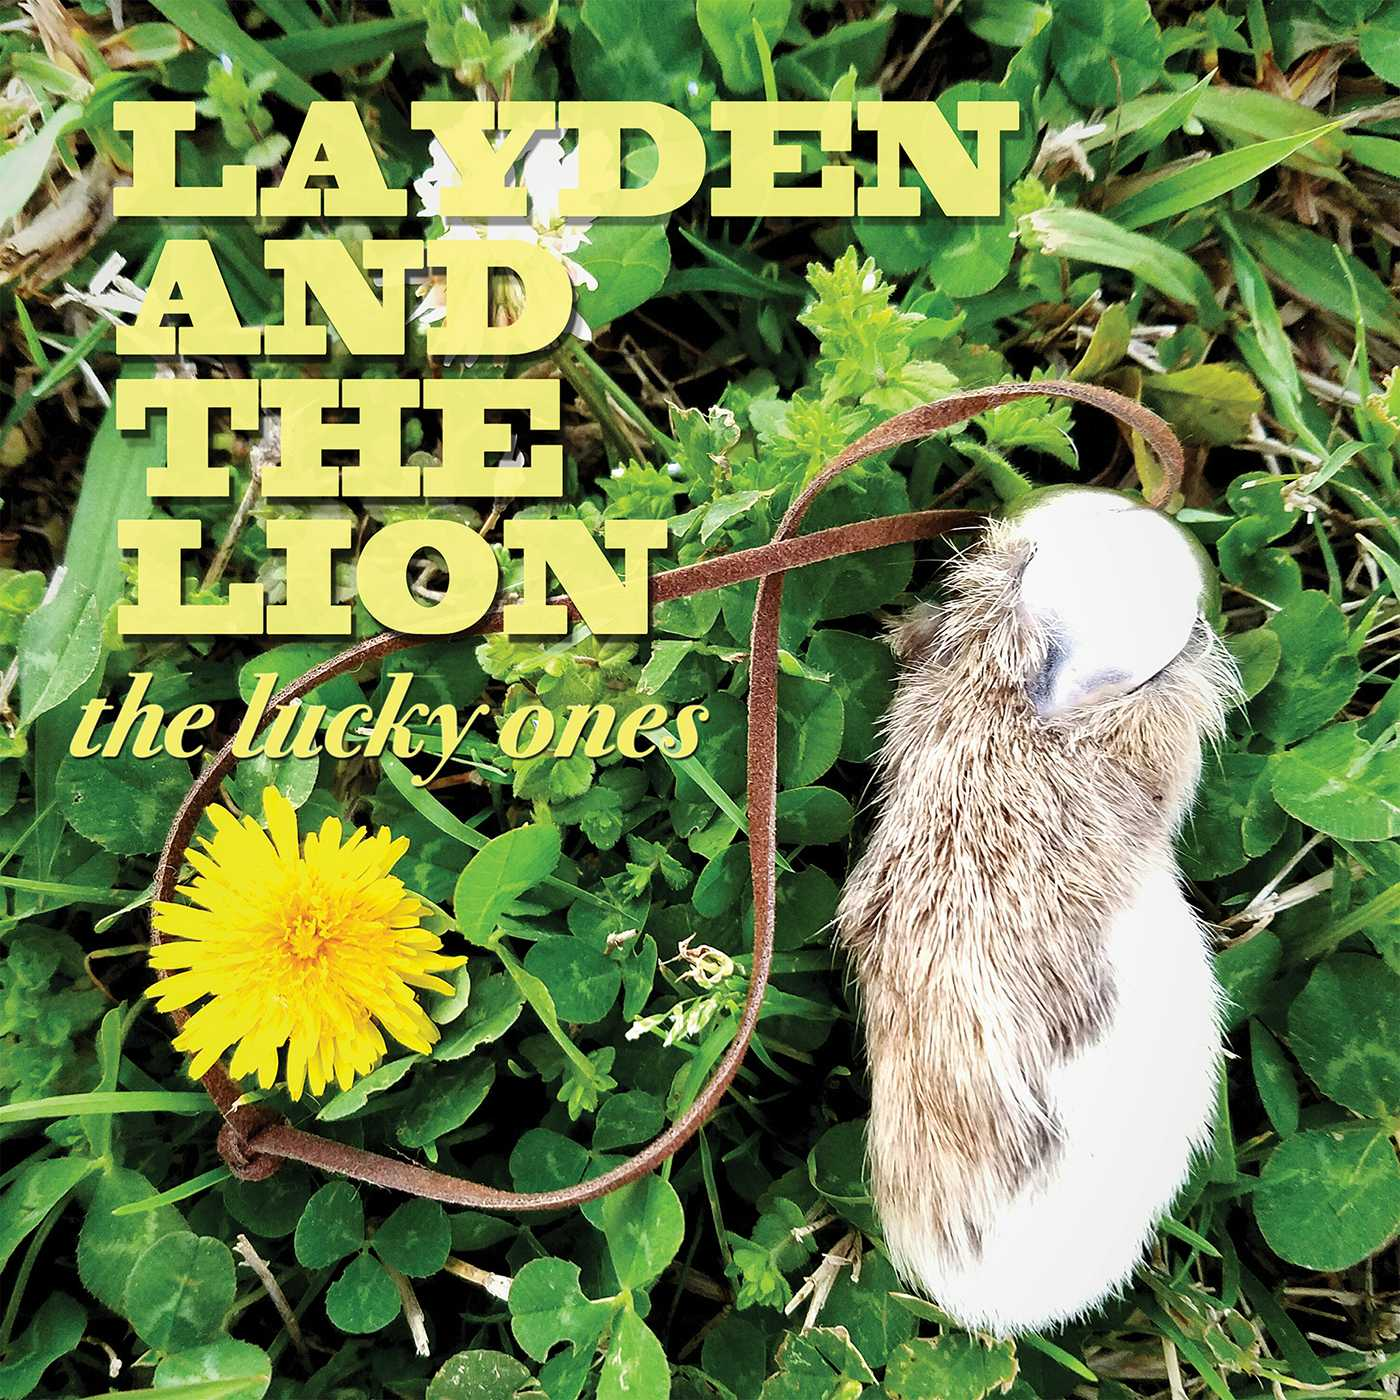 The Lucky Ones - Layden & The Lion